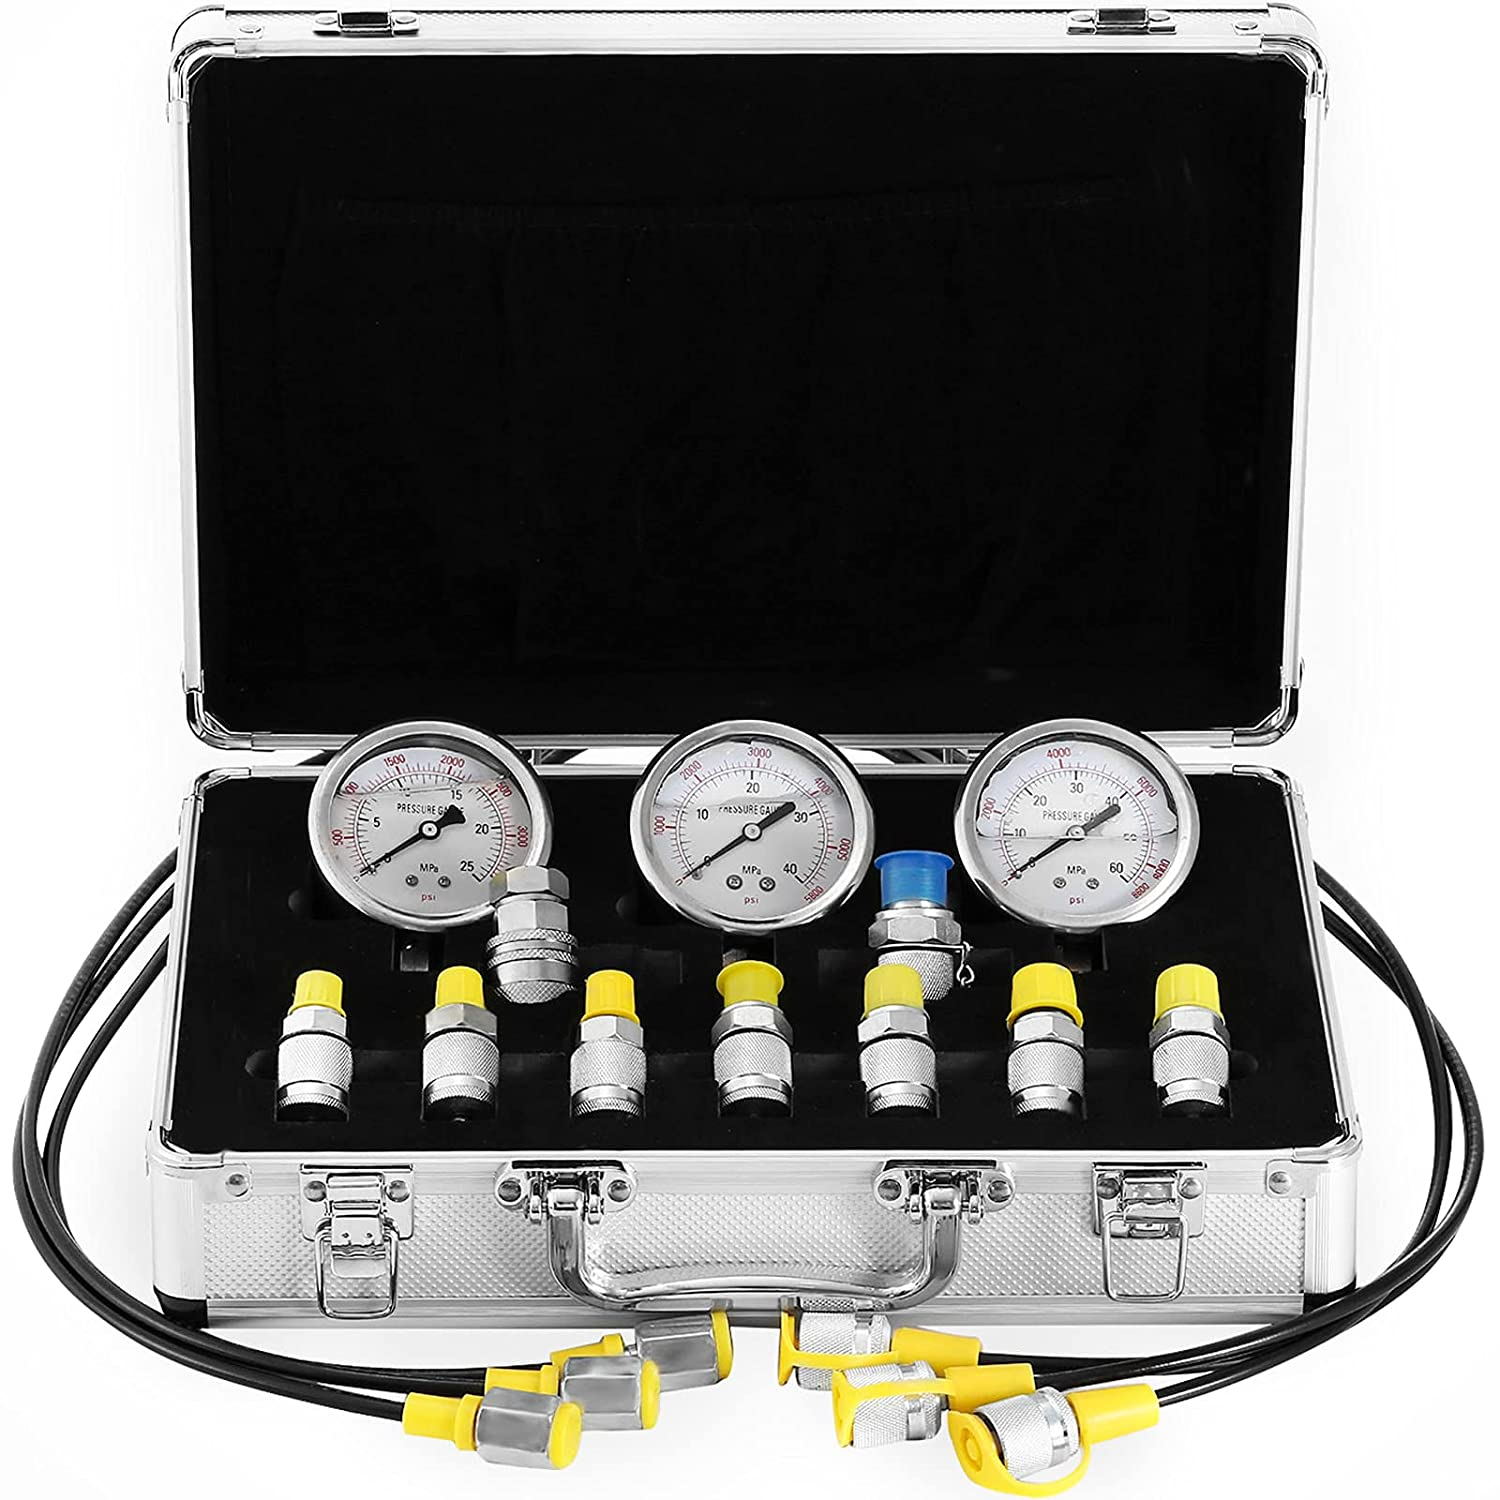 VEVOR Hydraulic Our shop OFFers the best service Ranking TOP3 Pressure Gauge Kit 25 60Mpa Excava 9Couplings 40